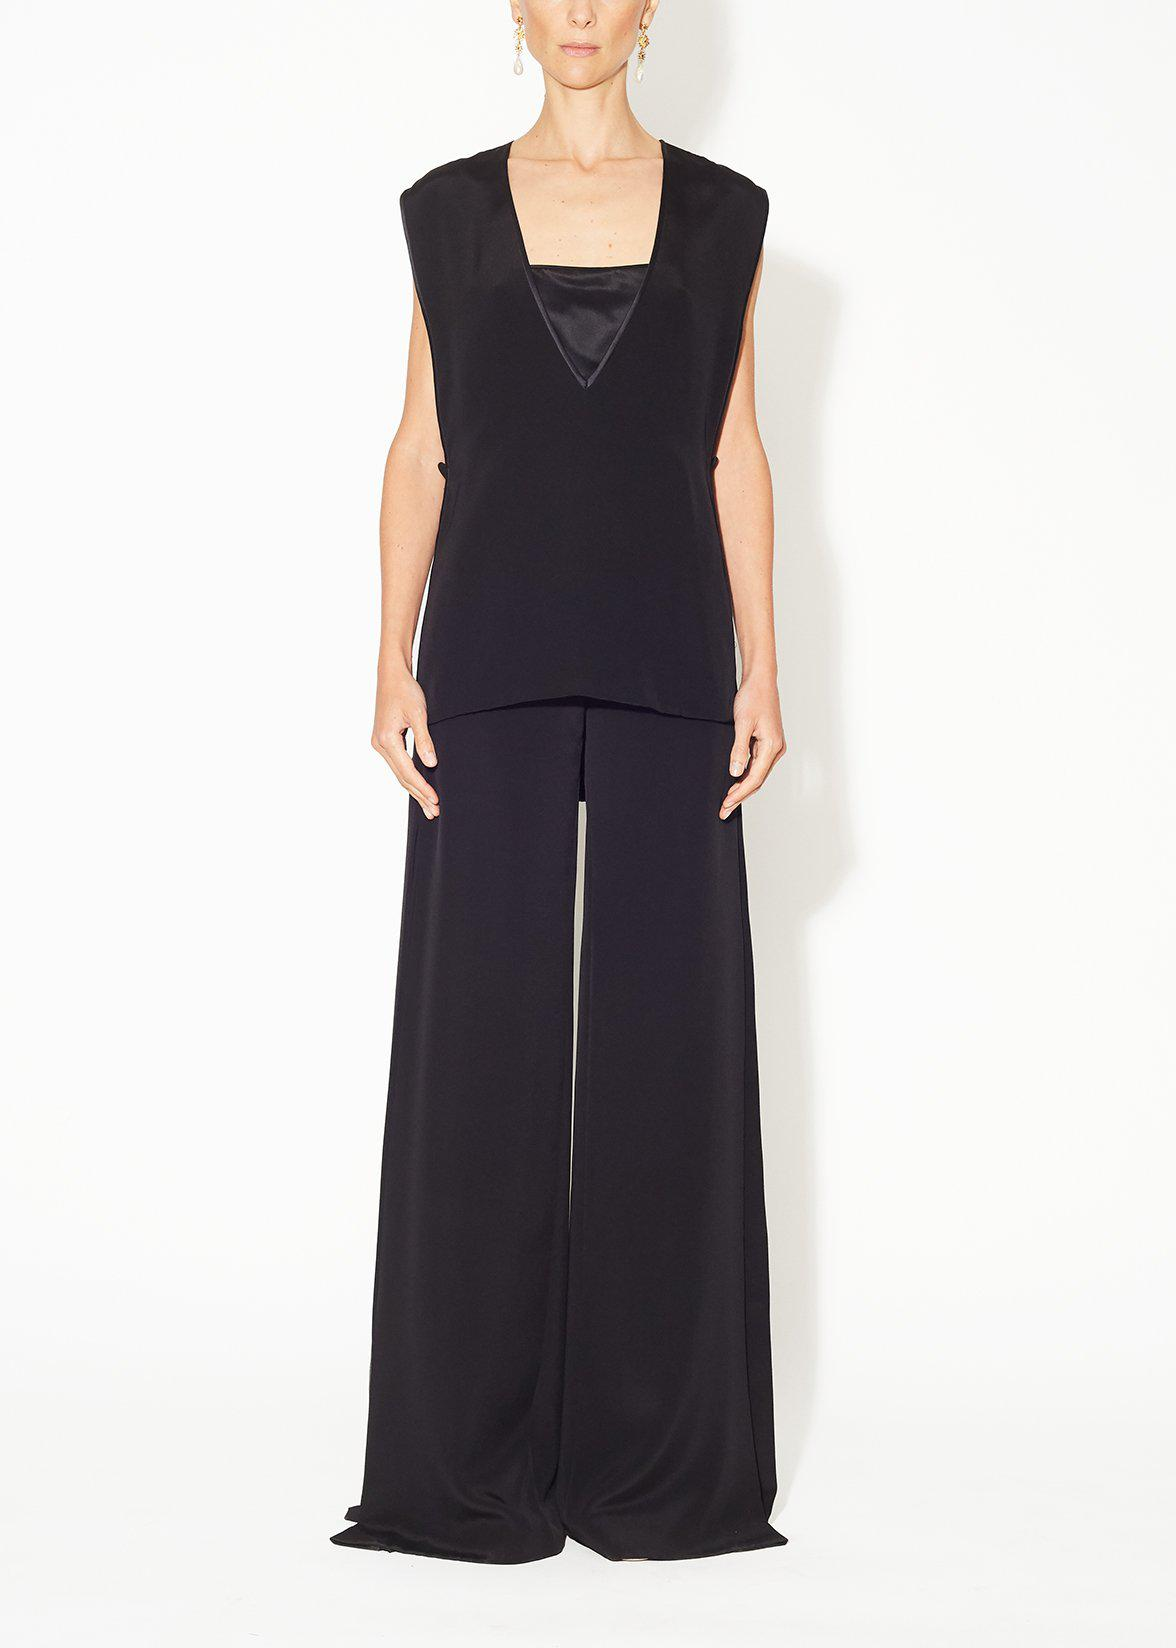 WIDE-LEG PANT WITH CHIFFON INSET IN SILK CREPE